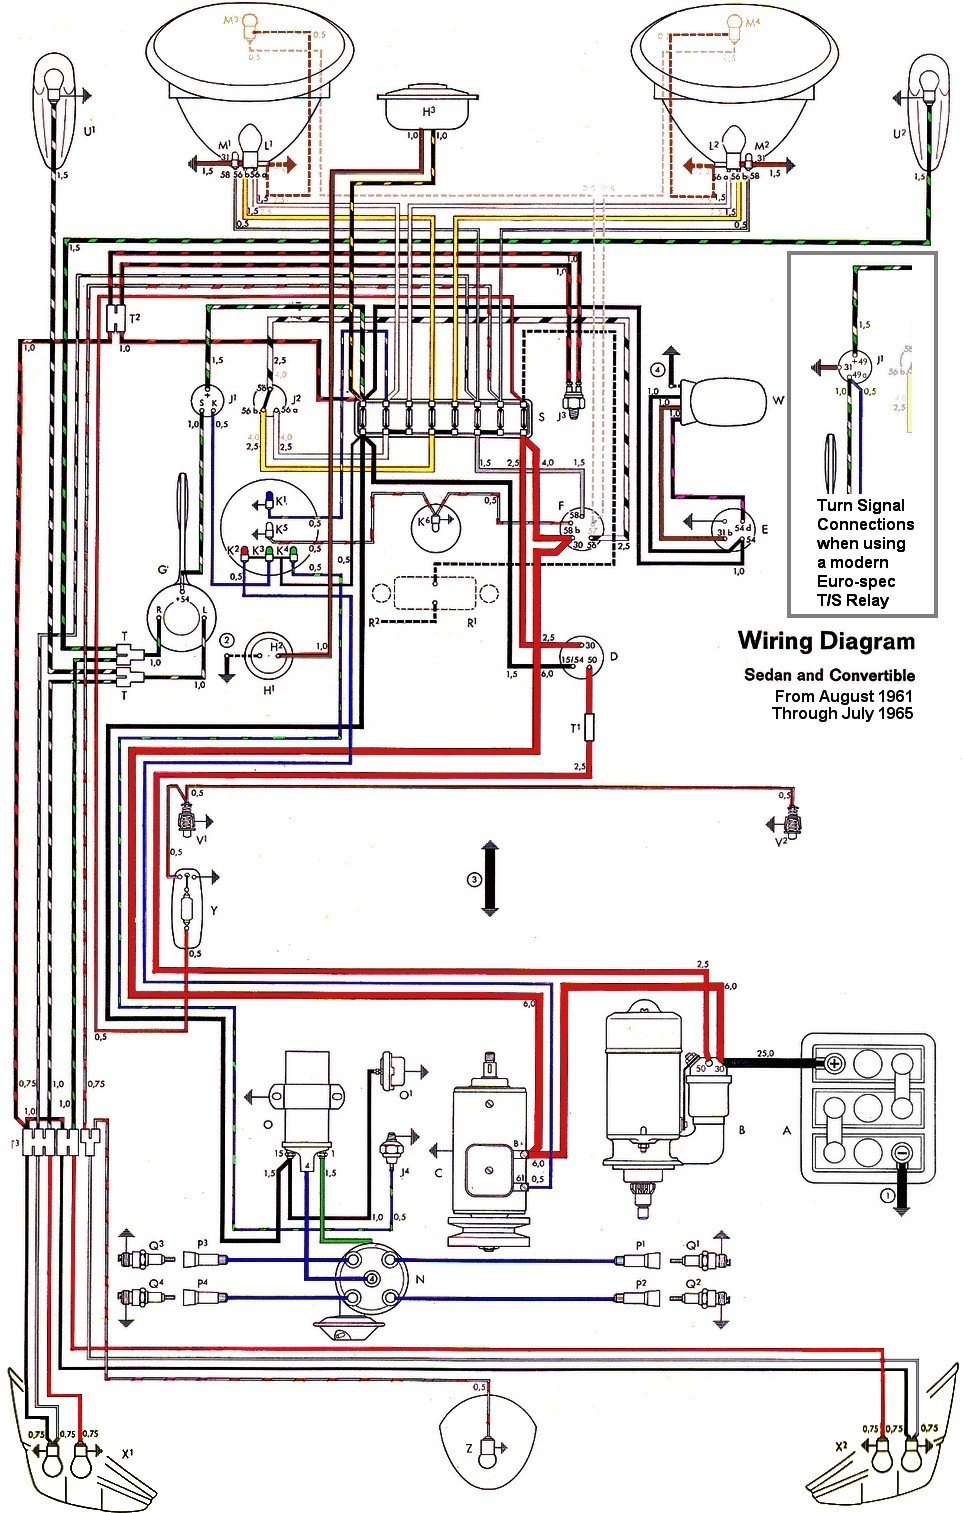 bug_62 65withinset thesamba com type 1 wiring diagrams 1968 vw bug wiring diagram at aneh.co